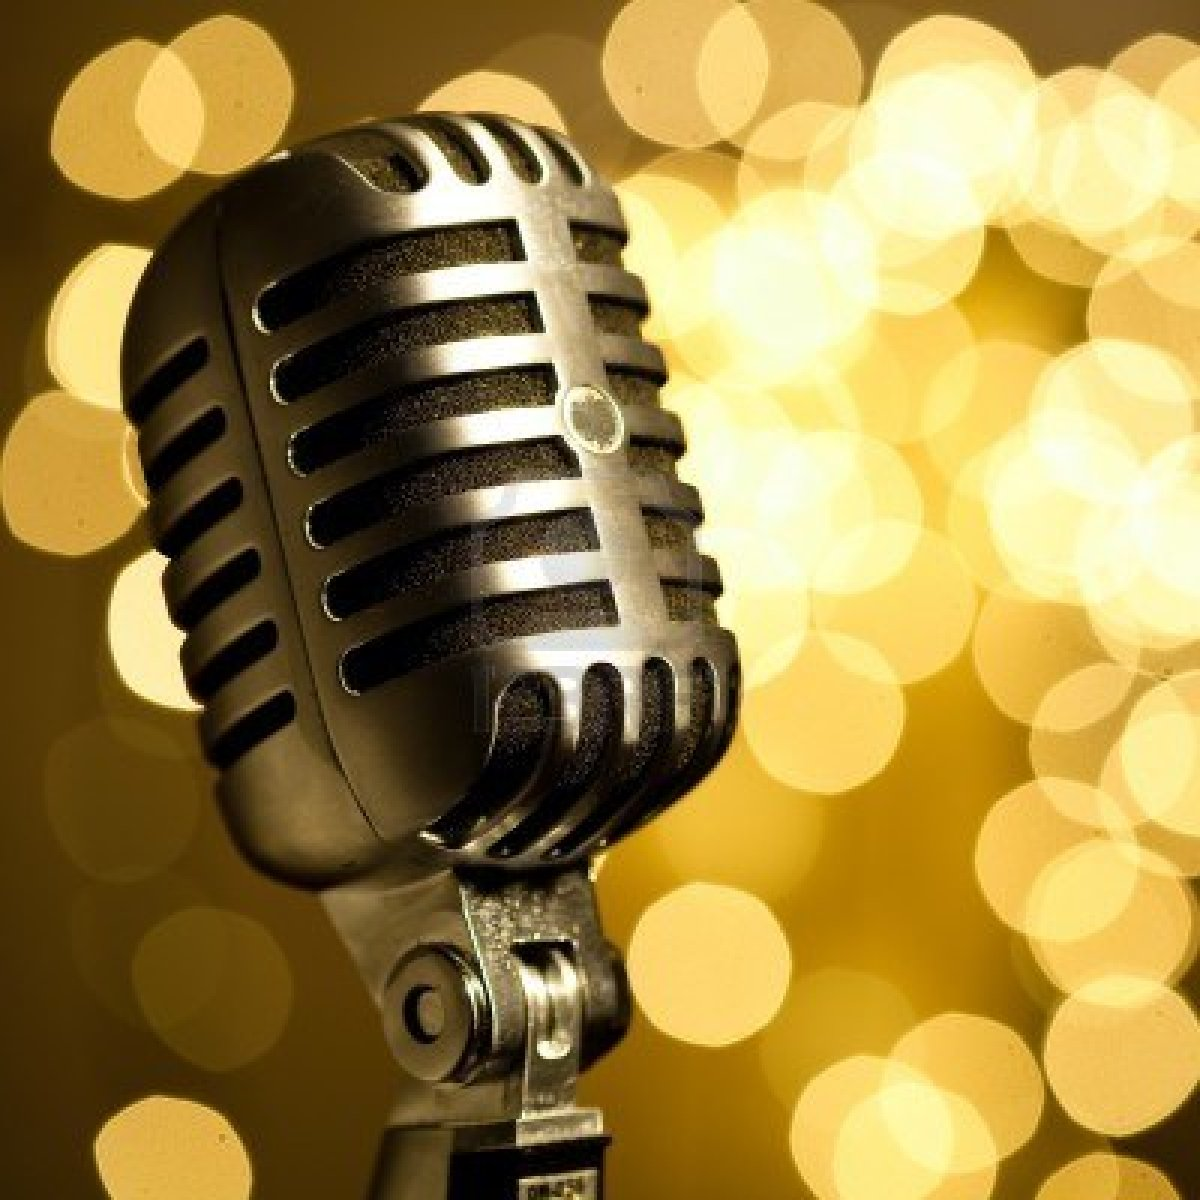 Drawn music retro microphone Microphone wallpaper  Hanging Microphone